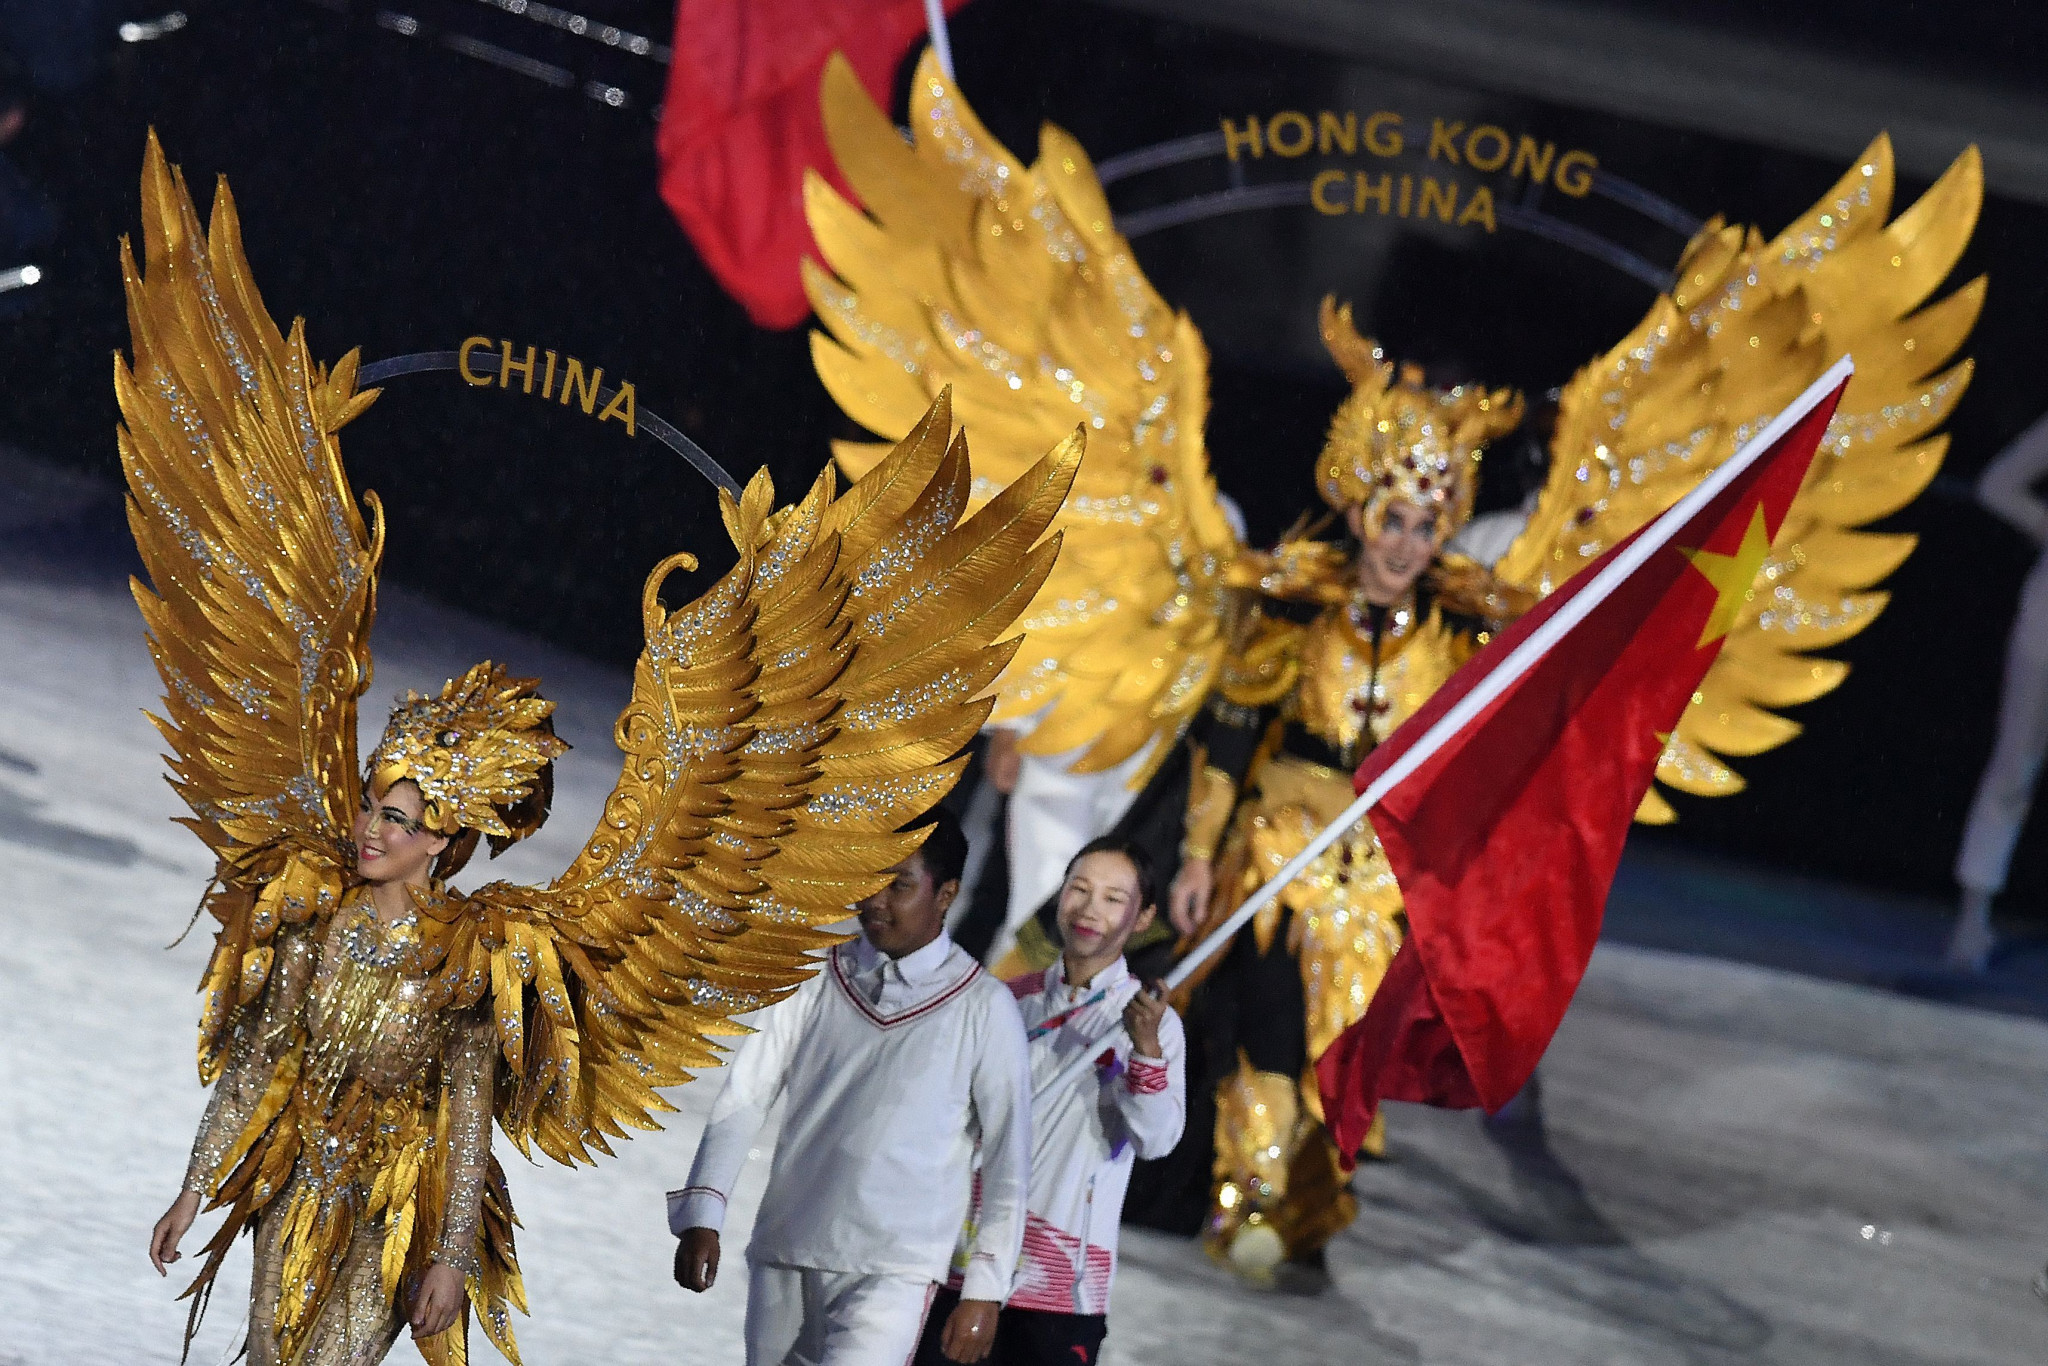 China, who topped the 2018 Asian Games medal table with 132 golds, earlier took part in the flag parade along with the other 44 competing nations ©Getty Images